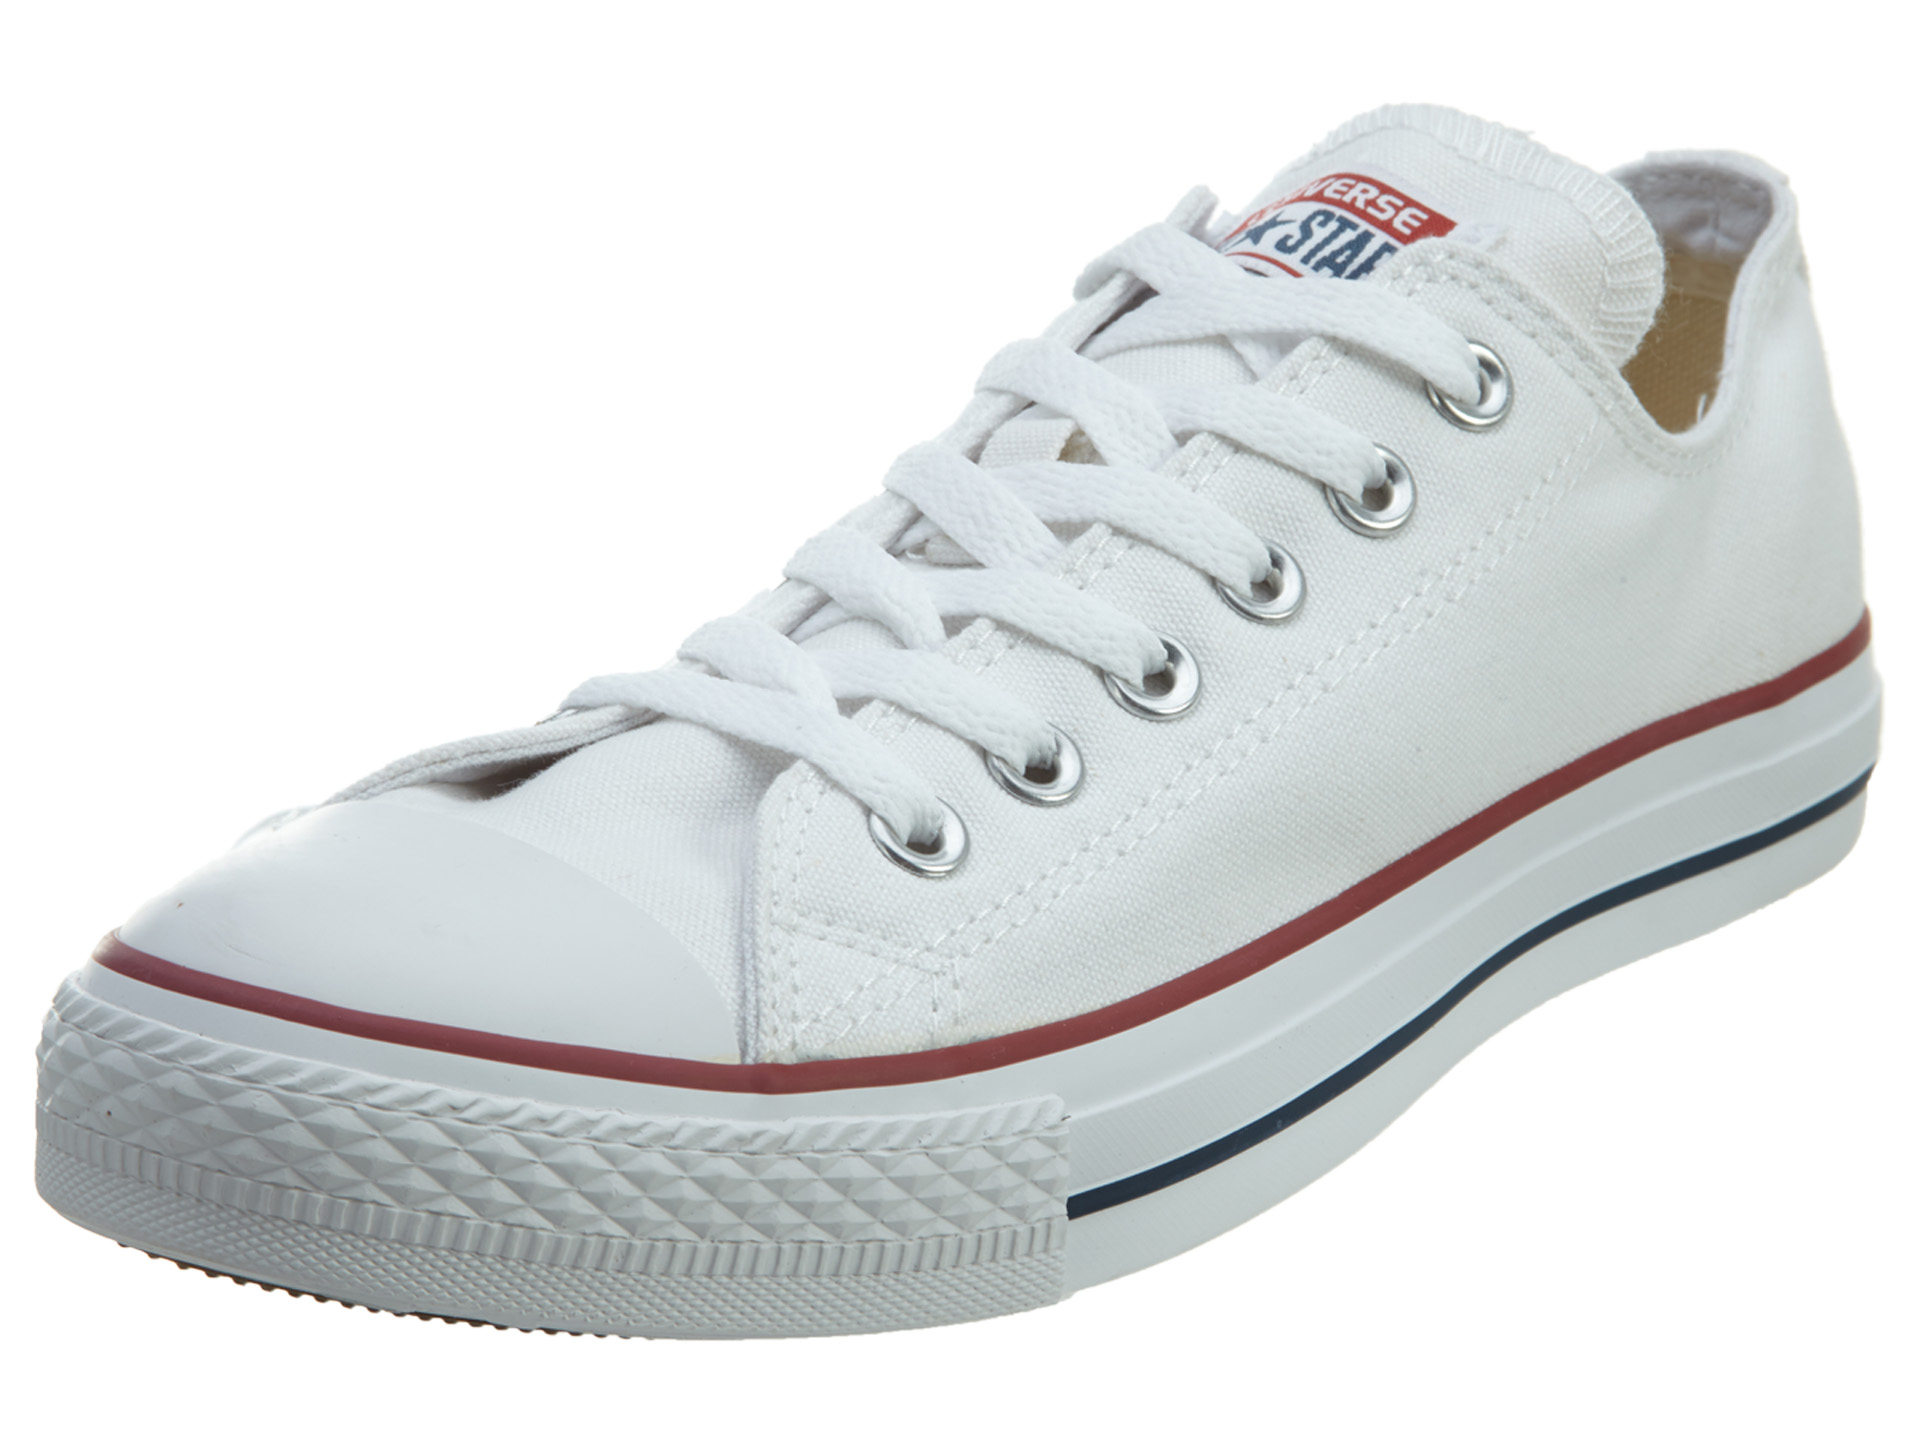 Converse All Star Hi Unisex Style : M7652c by